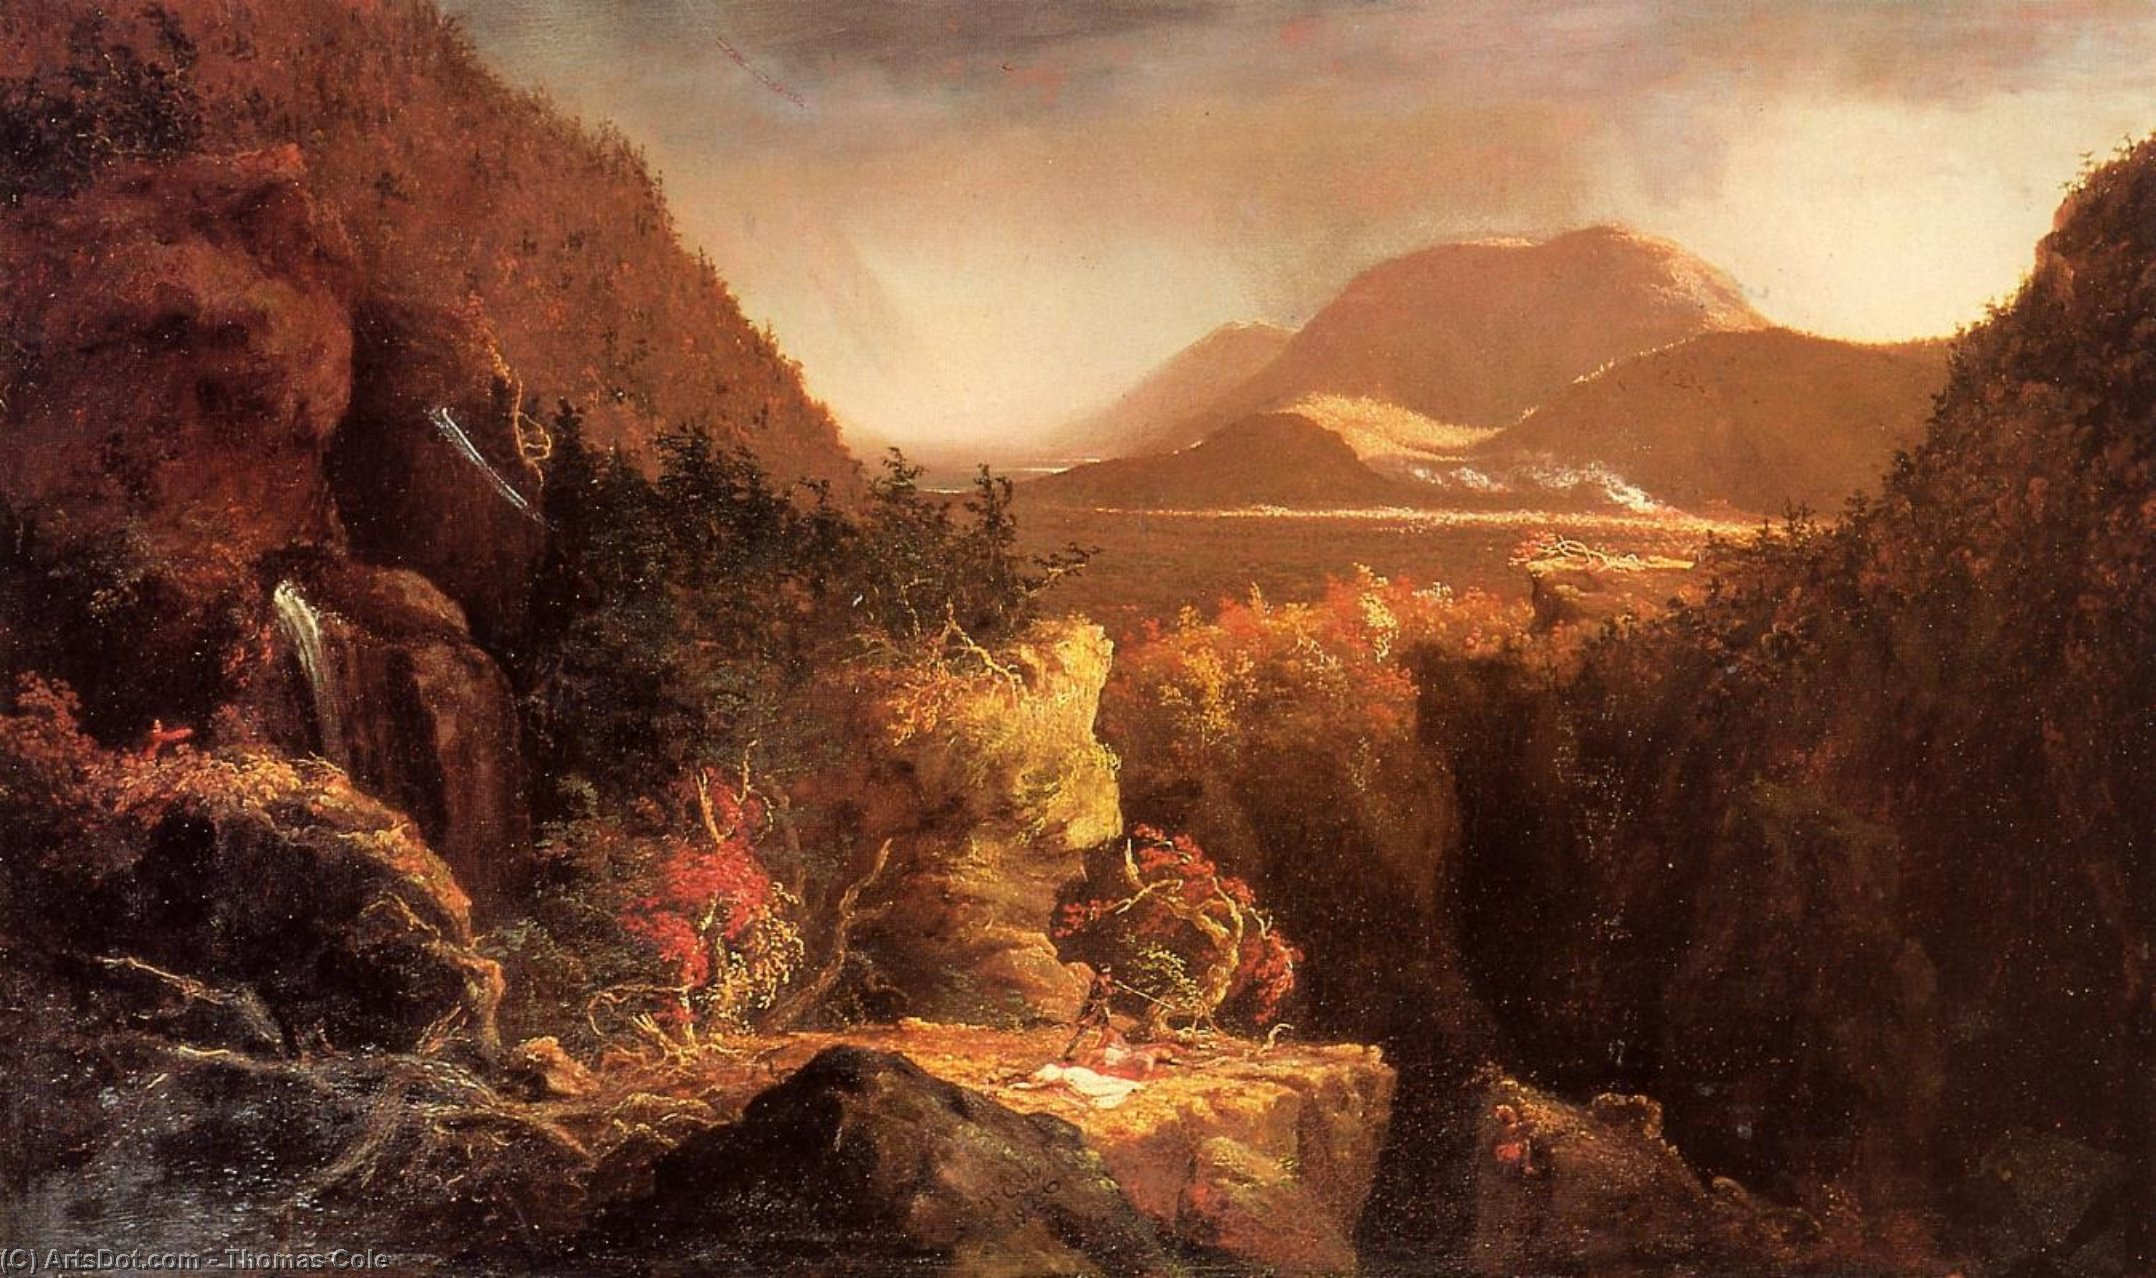 Landscape with Figures: A Scene from 'The Last of the Mohicans', Oil On Panel by Thomas Cole (1801-1848, United Kingdom)